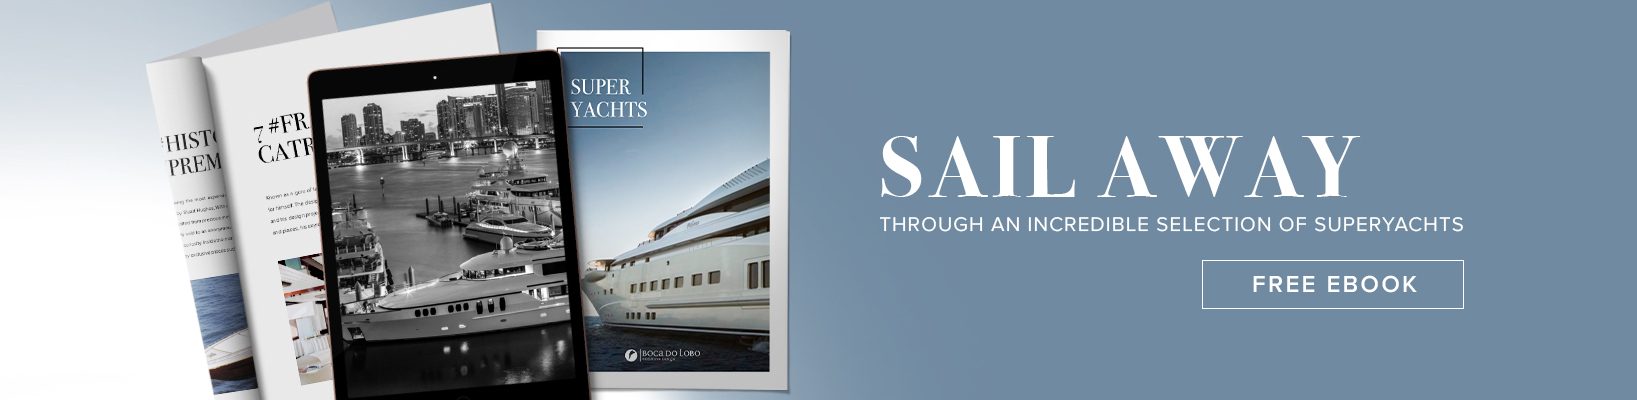 SUPERYACHTS EBOOK interior design projects Cara Woodhouse's Interior Design Projects Filled with Luxury and Drama ebook 20 20banner